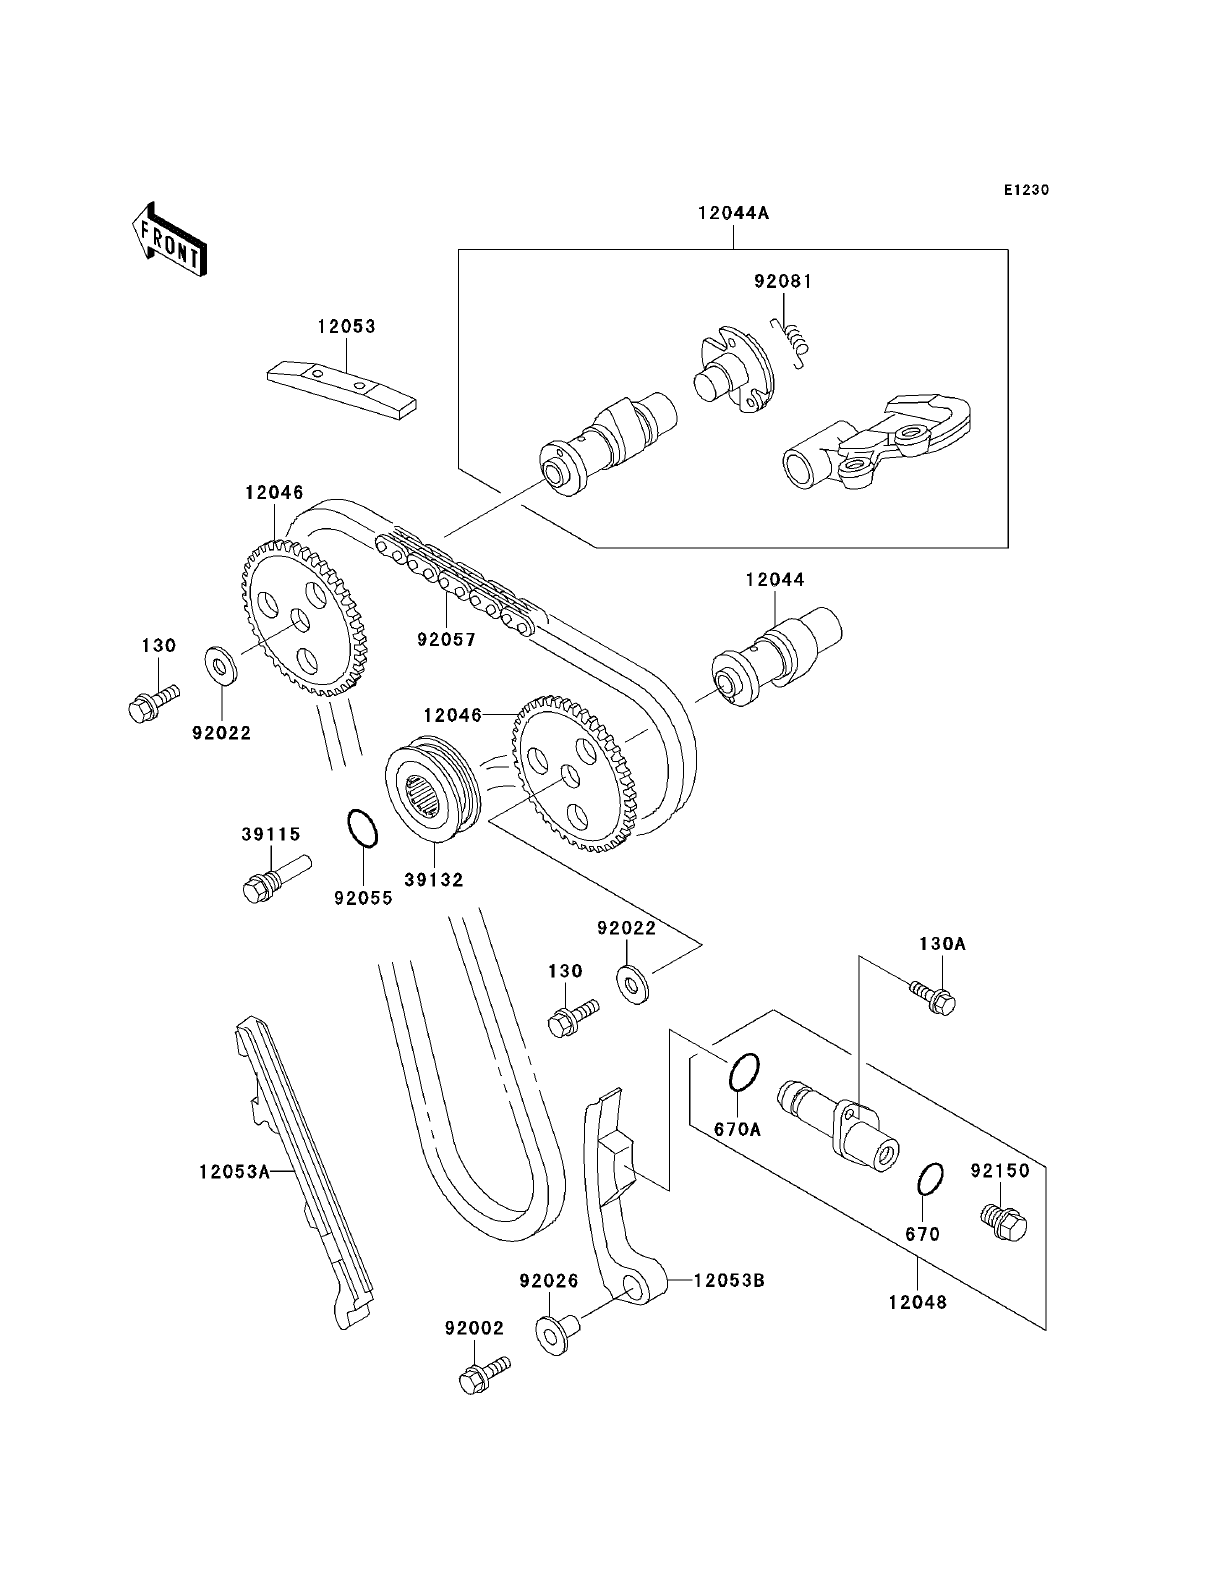 Kawasaki KLR250: Kawasaki KLR250 Parts Diagrams